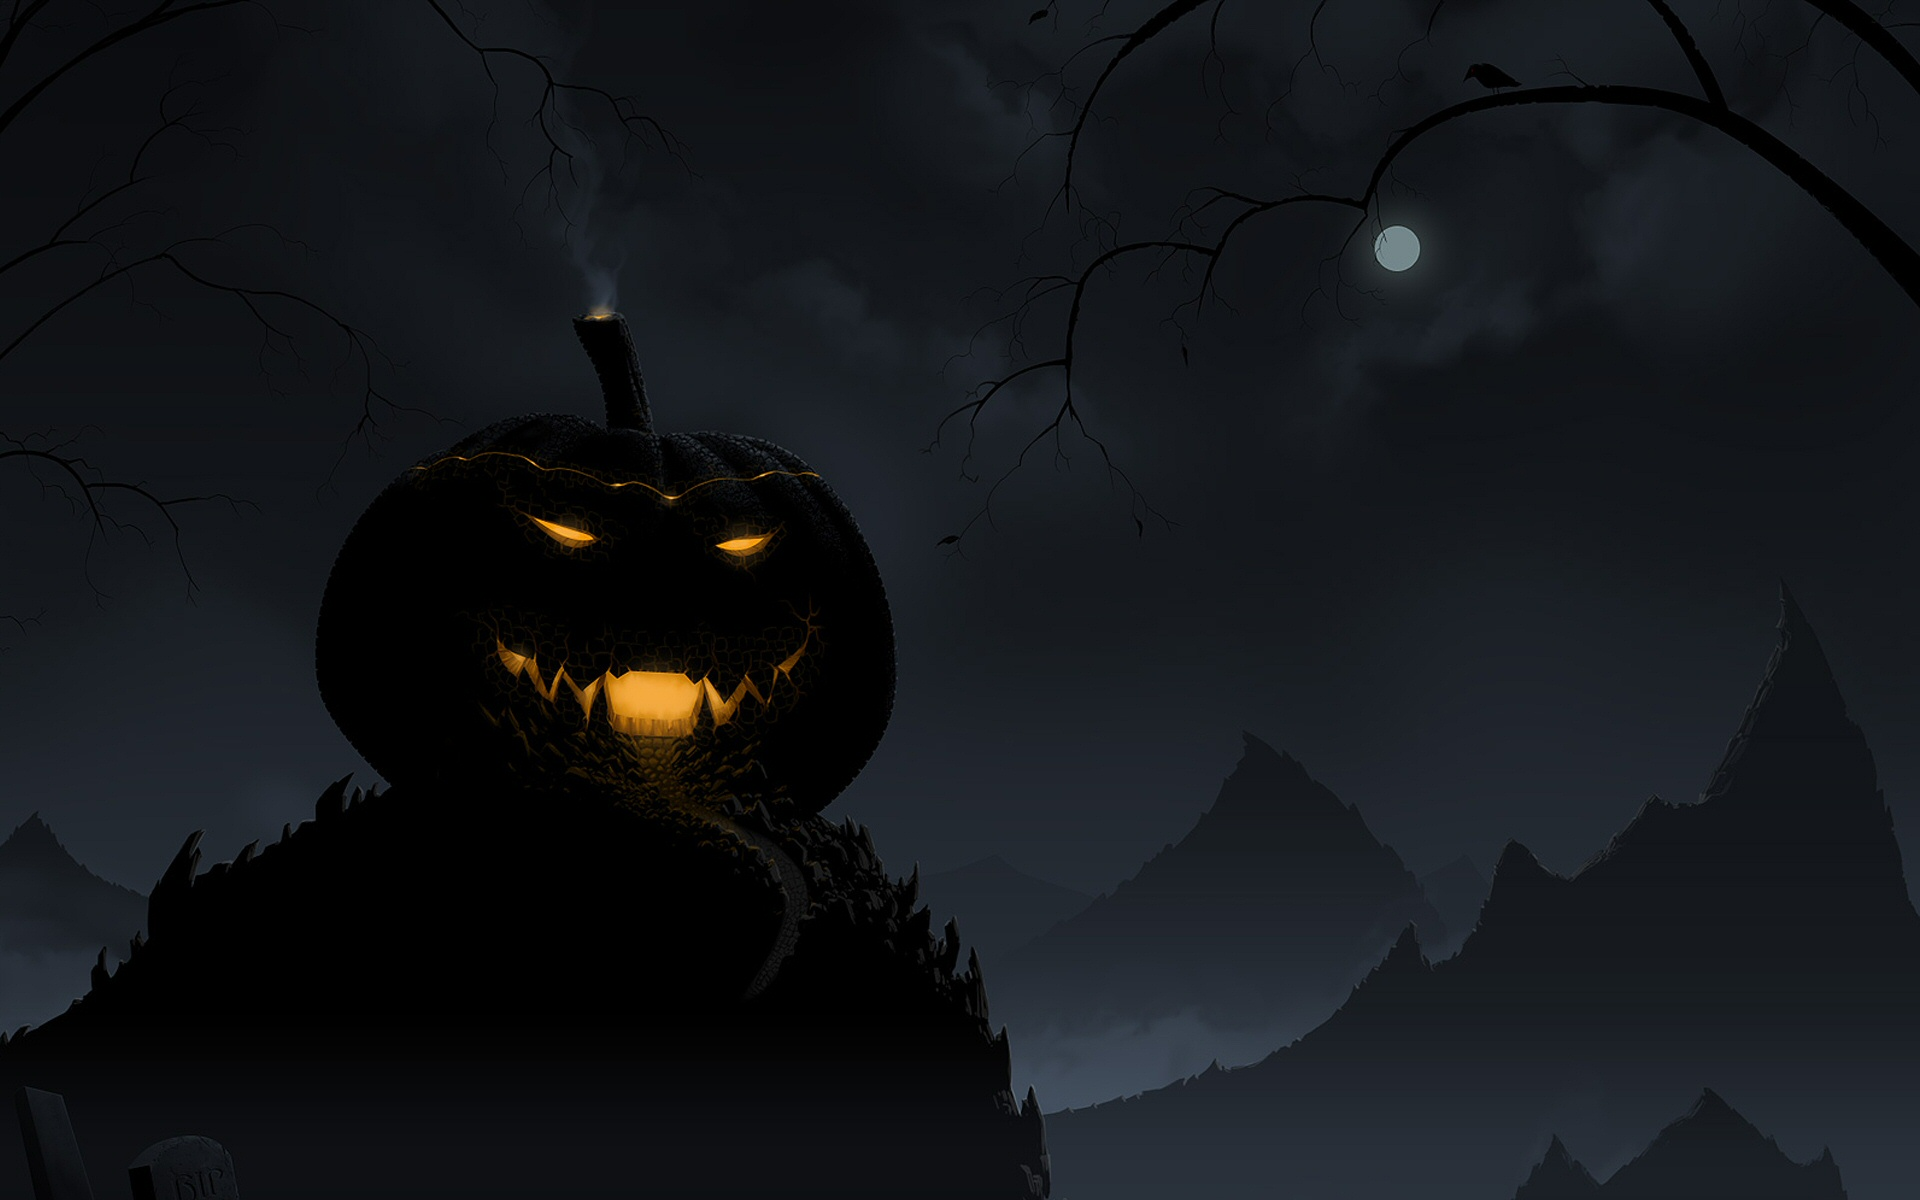 Scary Halloween Horror  Halloween Backgrounds Wallpapers, Free 1920x1200